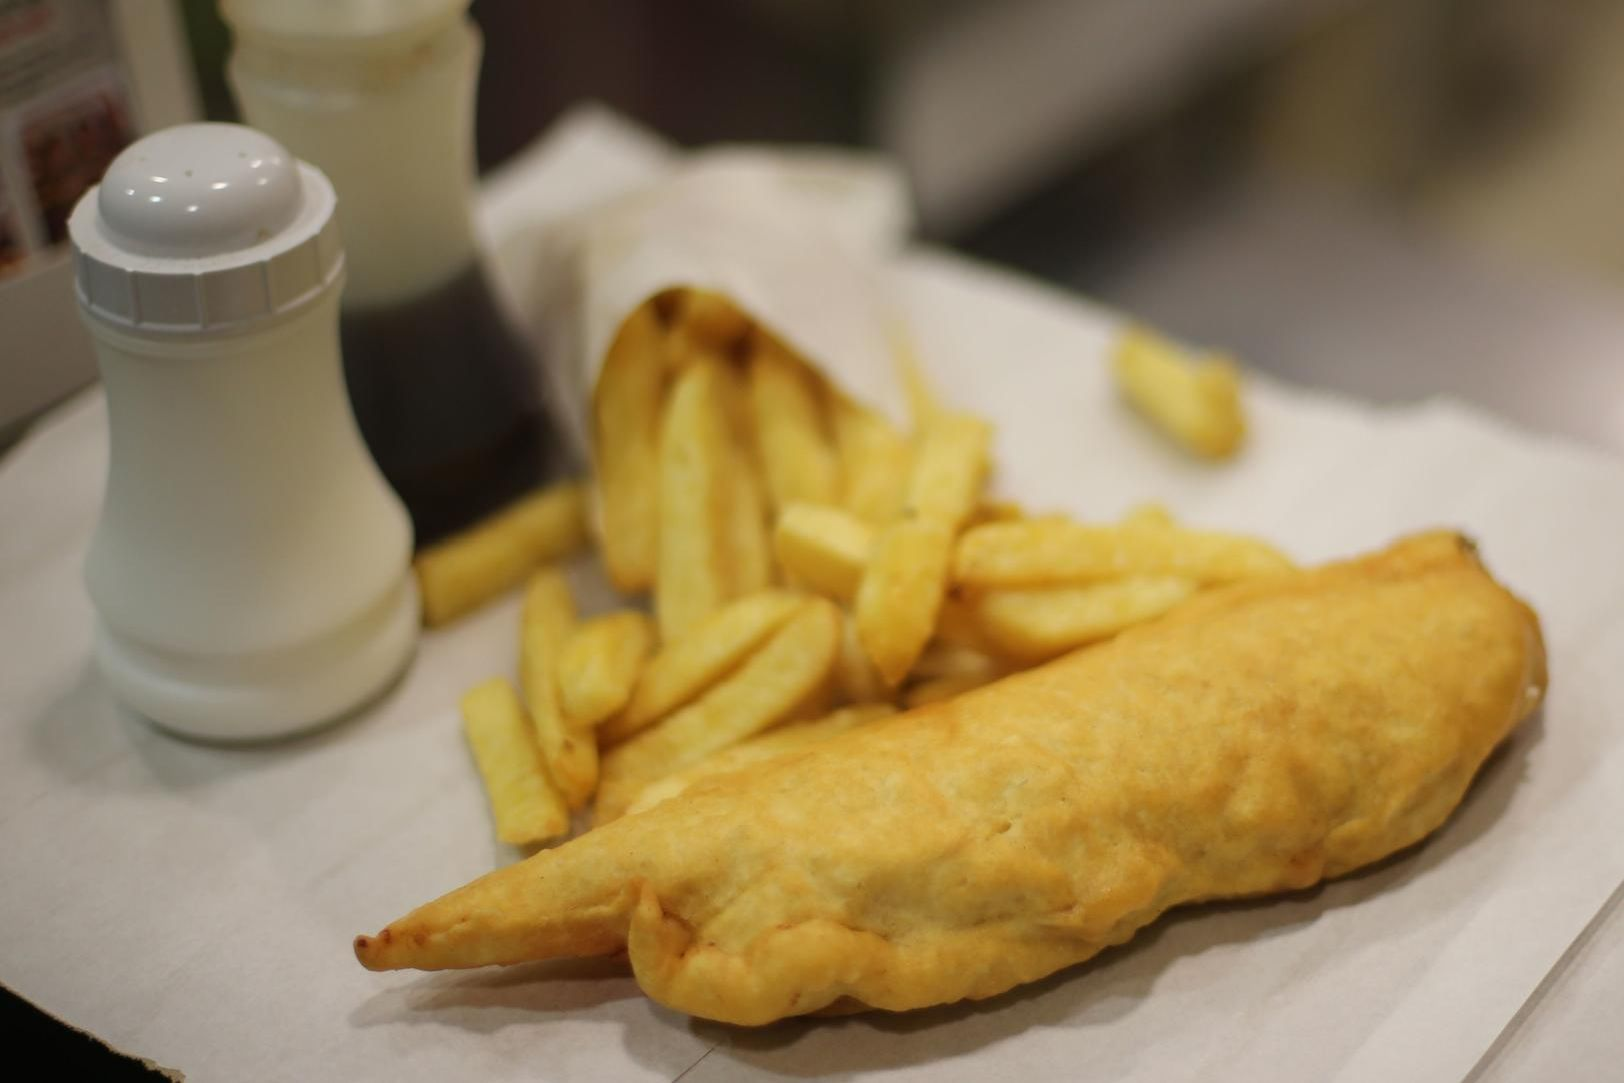 Mr Allen stole more than 6,000 from the fish and chip shop in Paulsgrove.